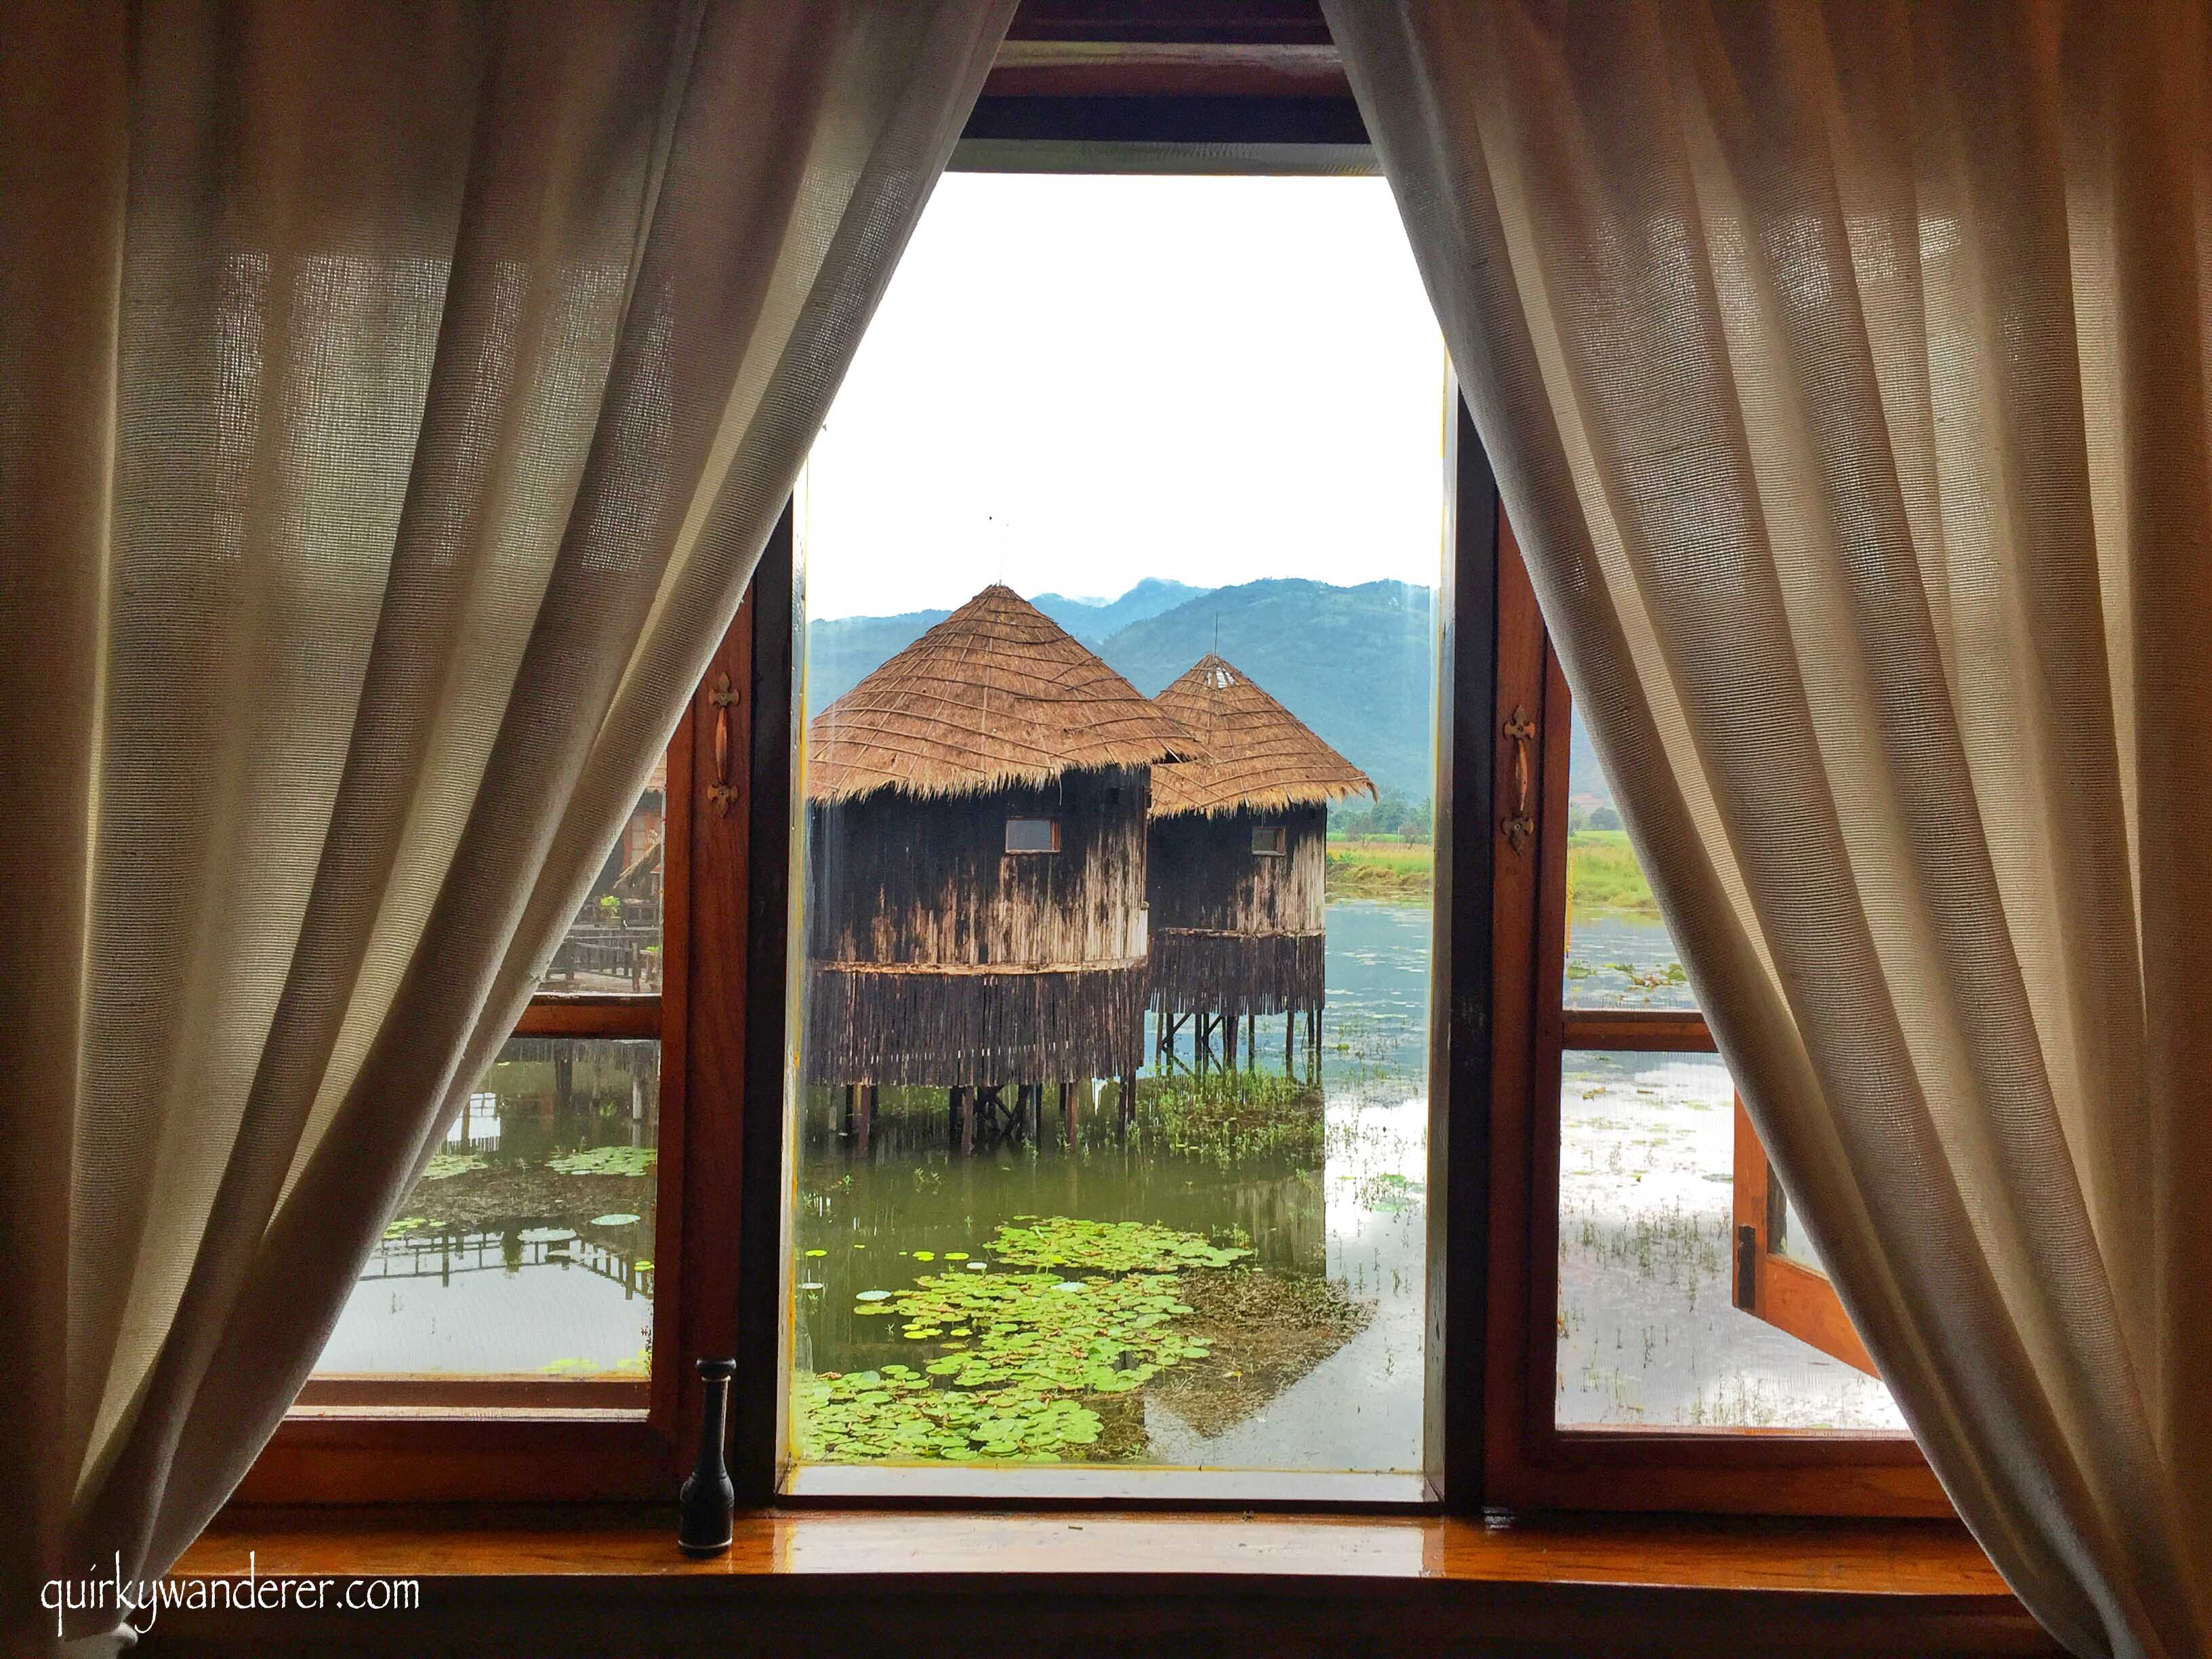 Best hotels in Inle lake